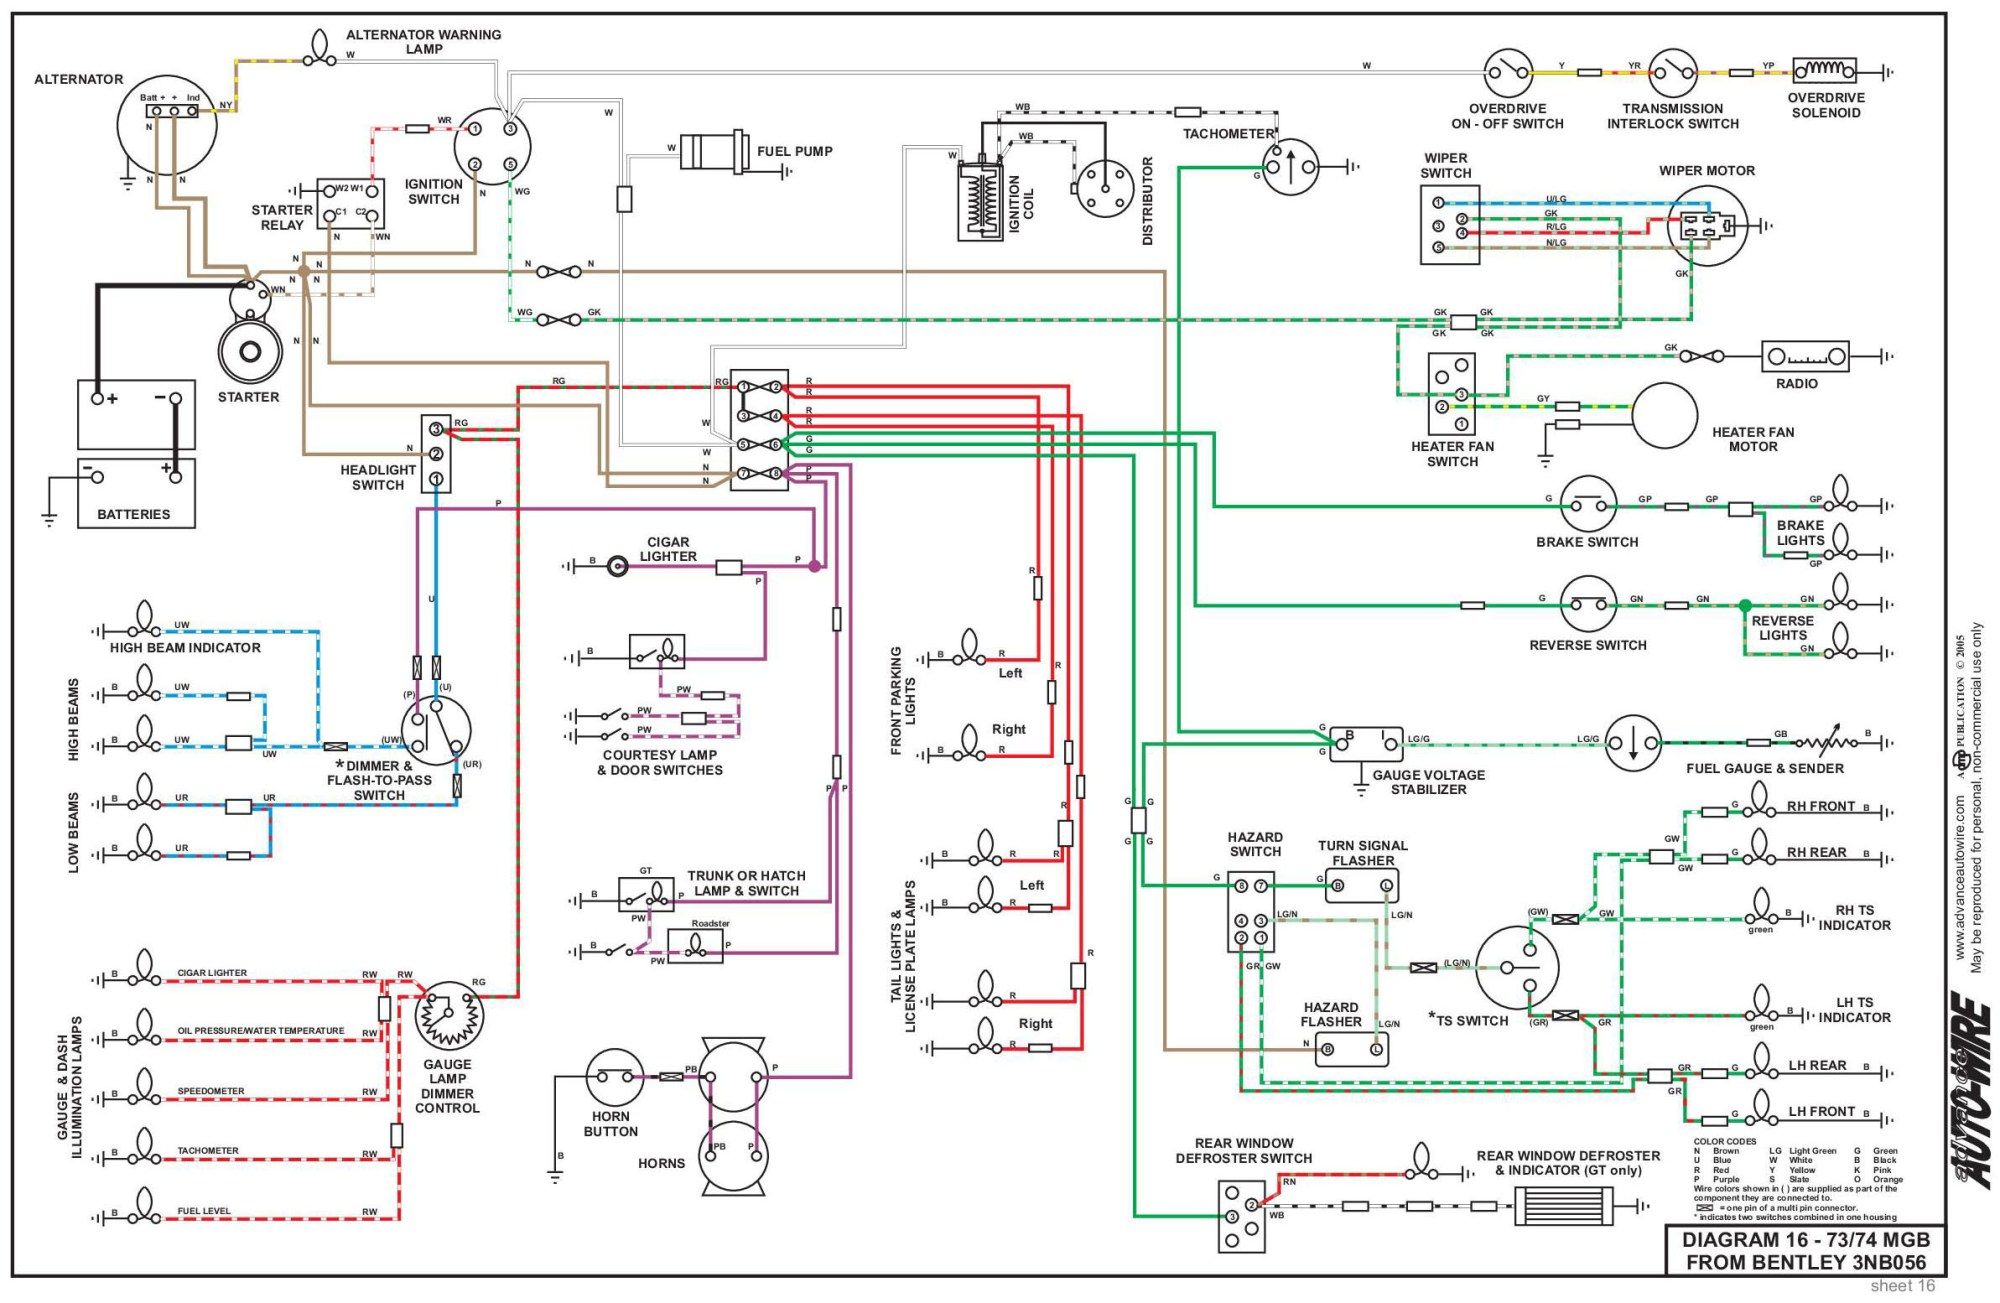 hight resolution of 1977 mgb fuse box diagram wiring schematic